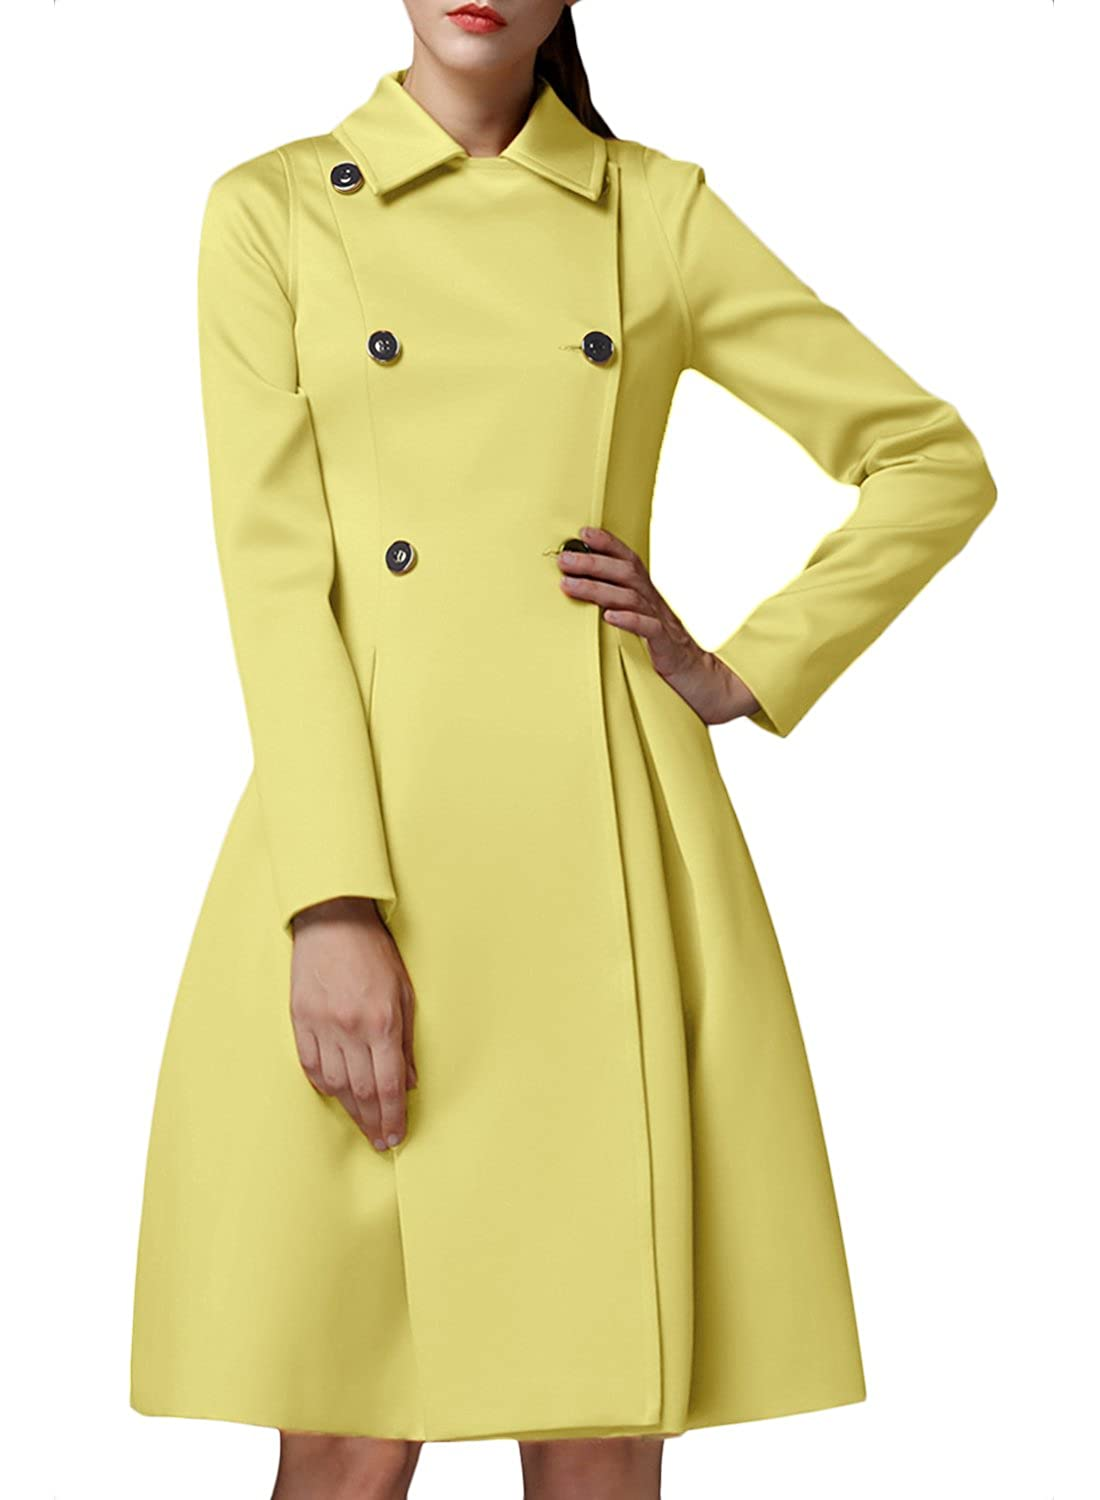 Azbro Women Double Breasted Turn Down Collar Slim Fit Trench Coat